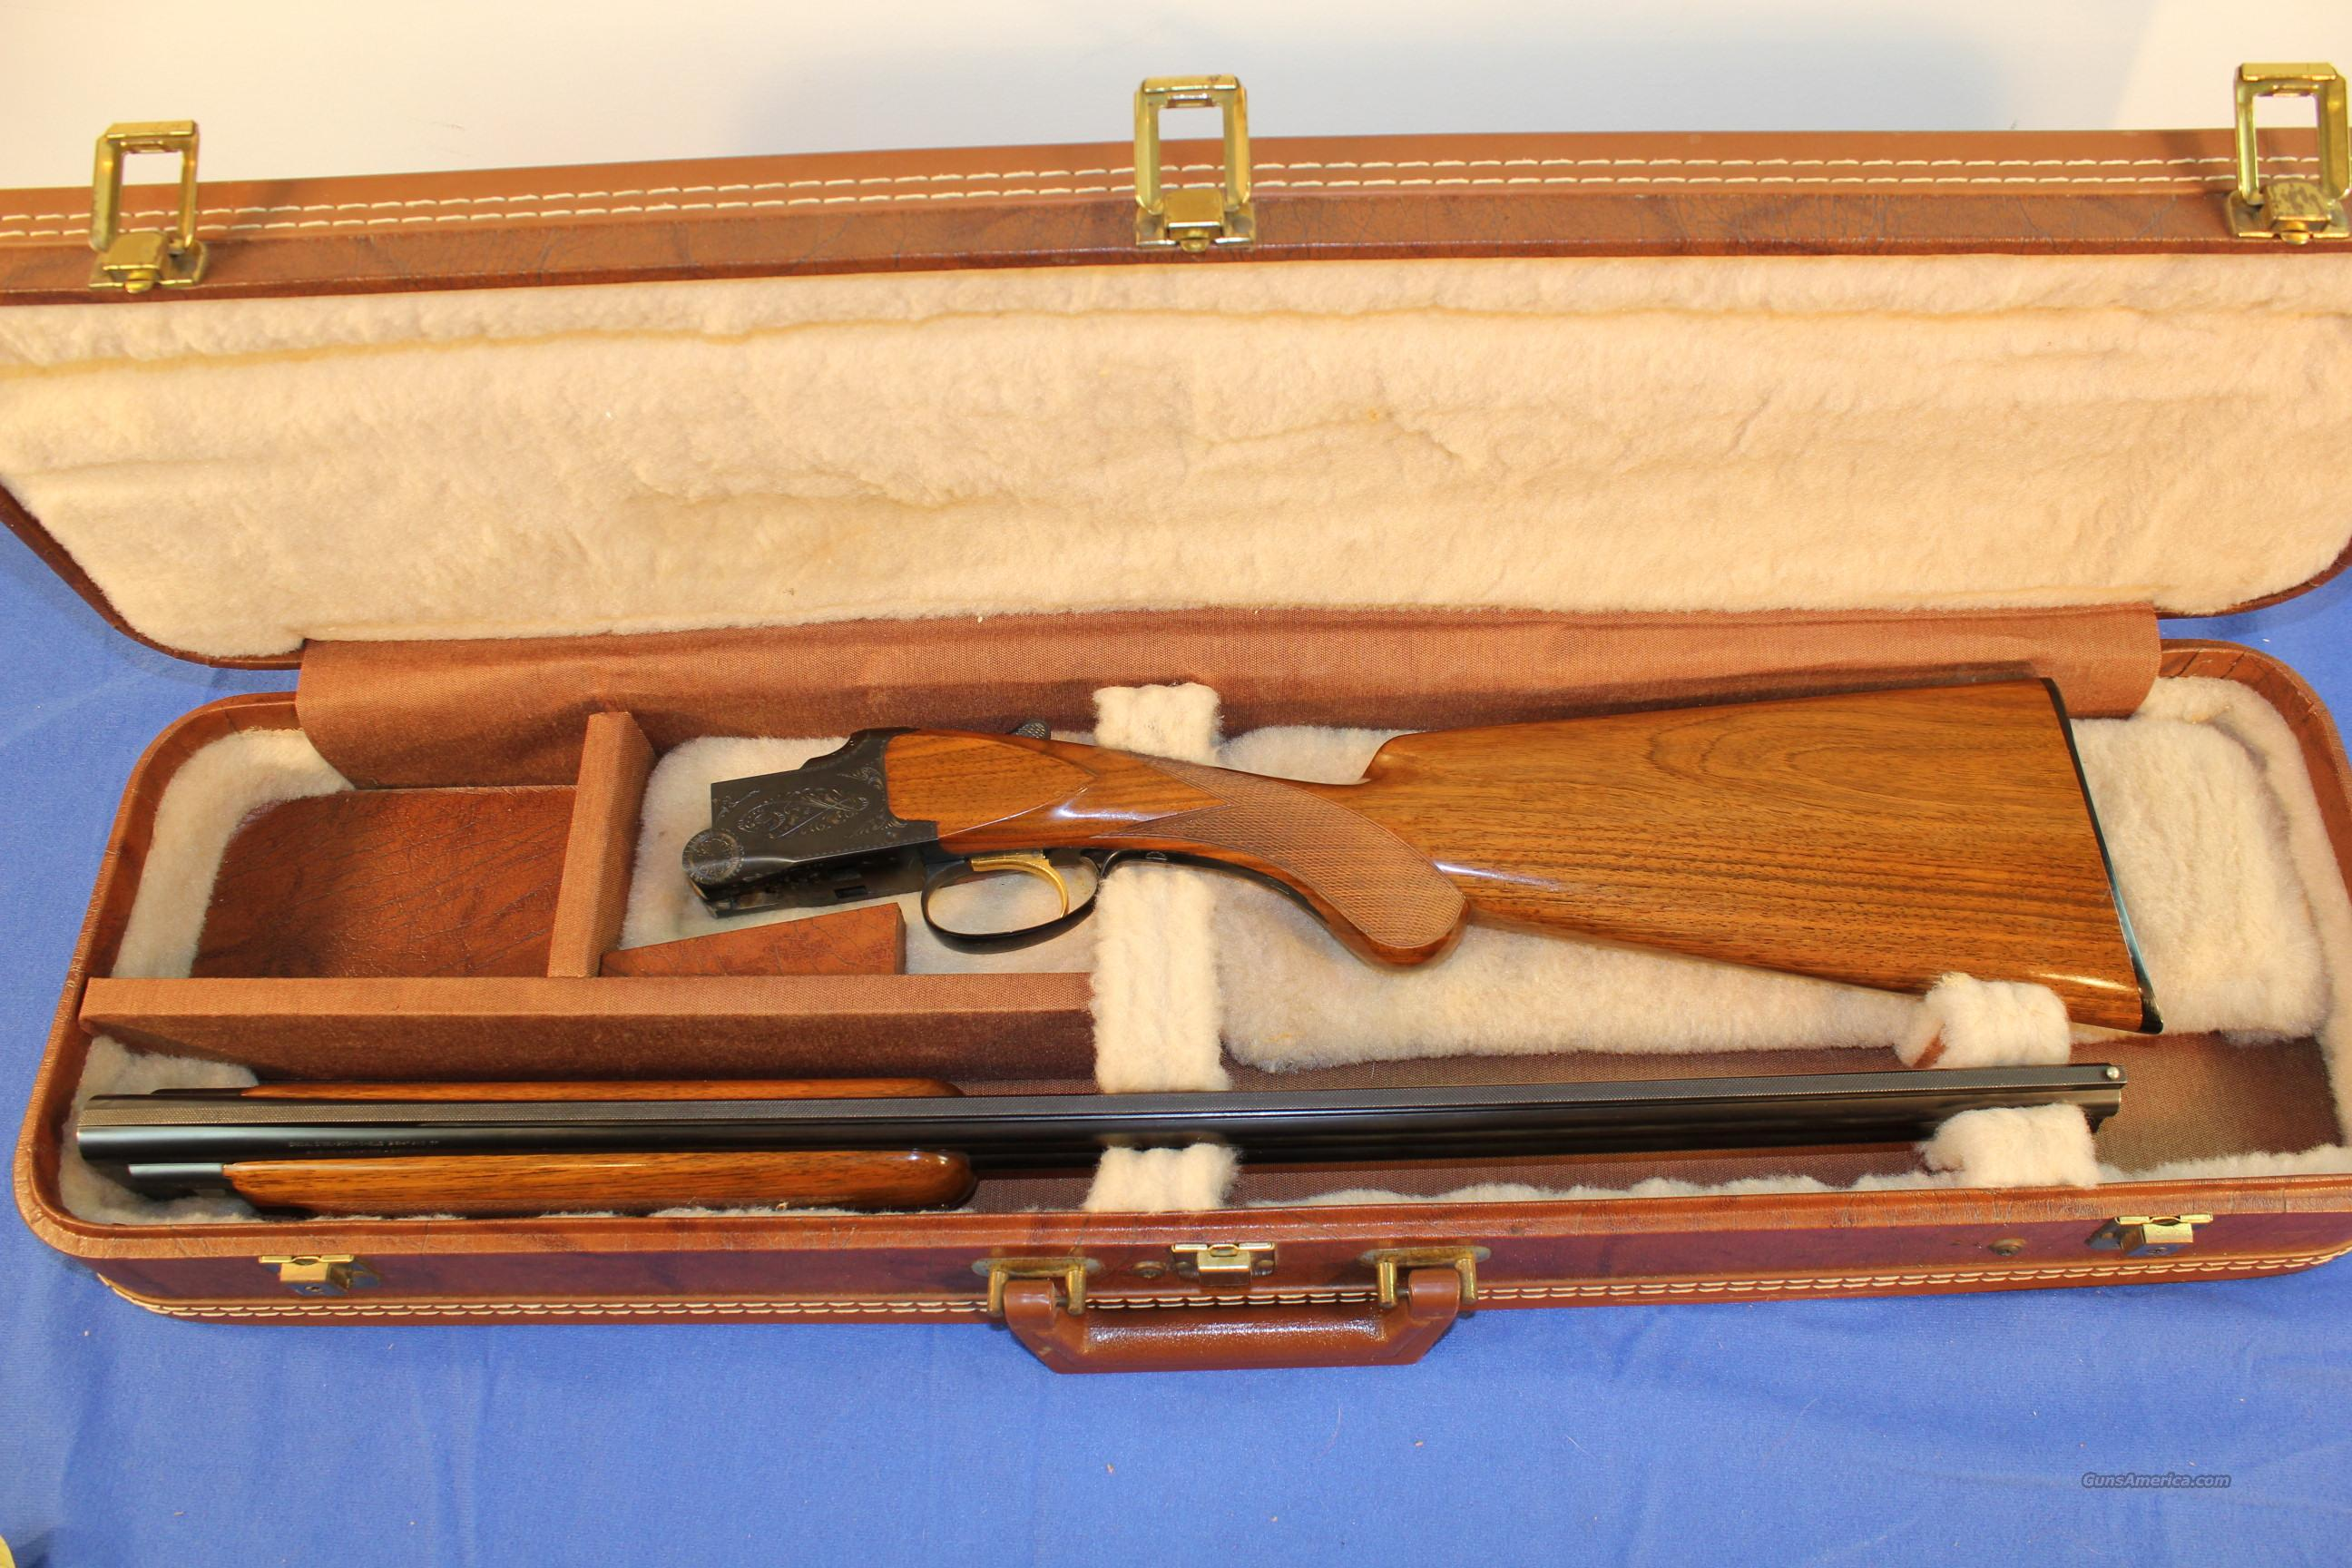 Browning 20 Gauge Grade I Belgium 1965  Guns > Shotguns > Browning Shotguns > Over Unders > Belgian Manufacture